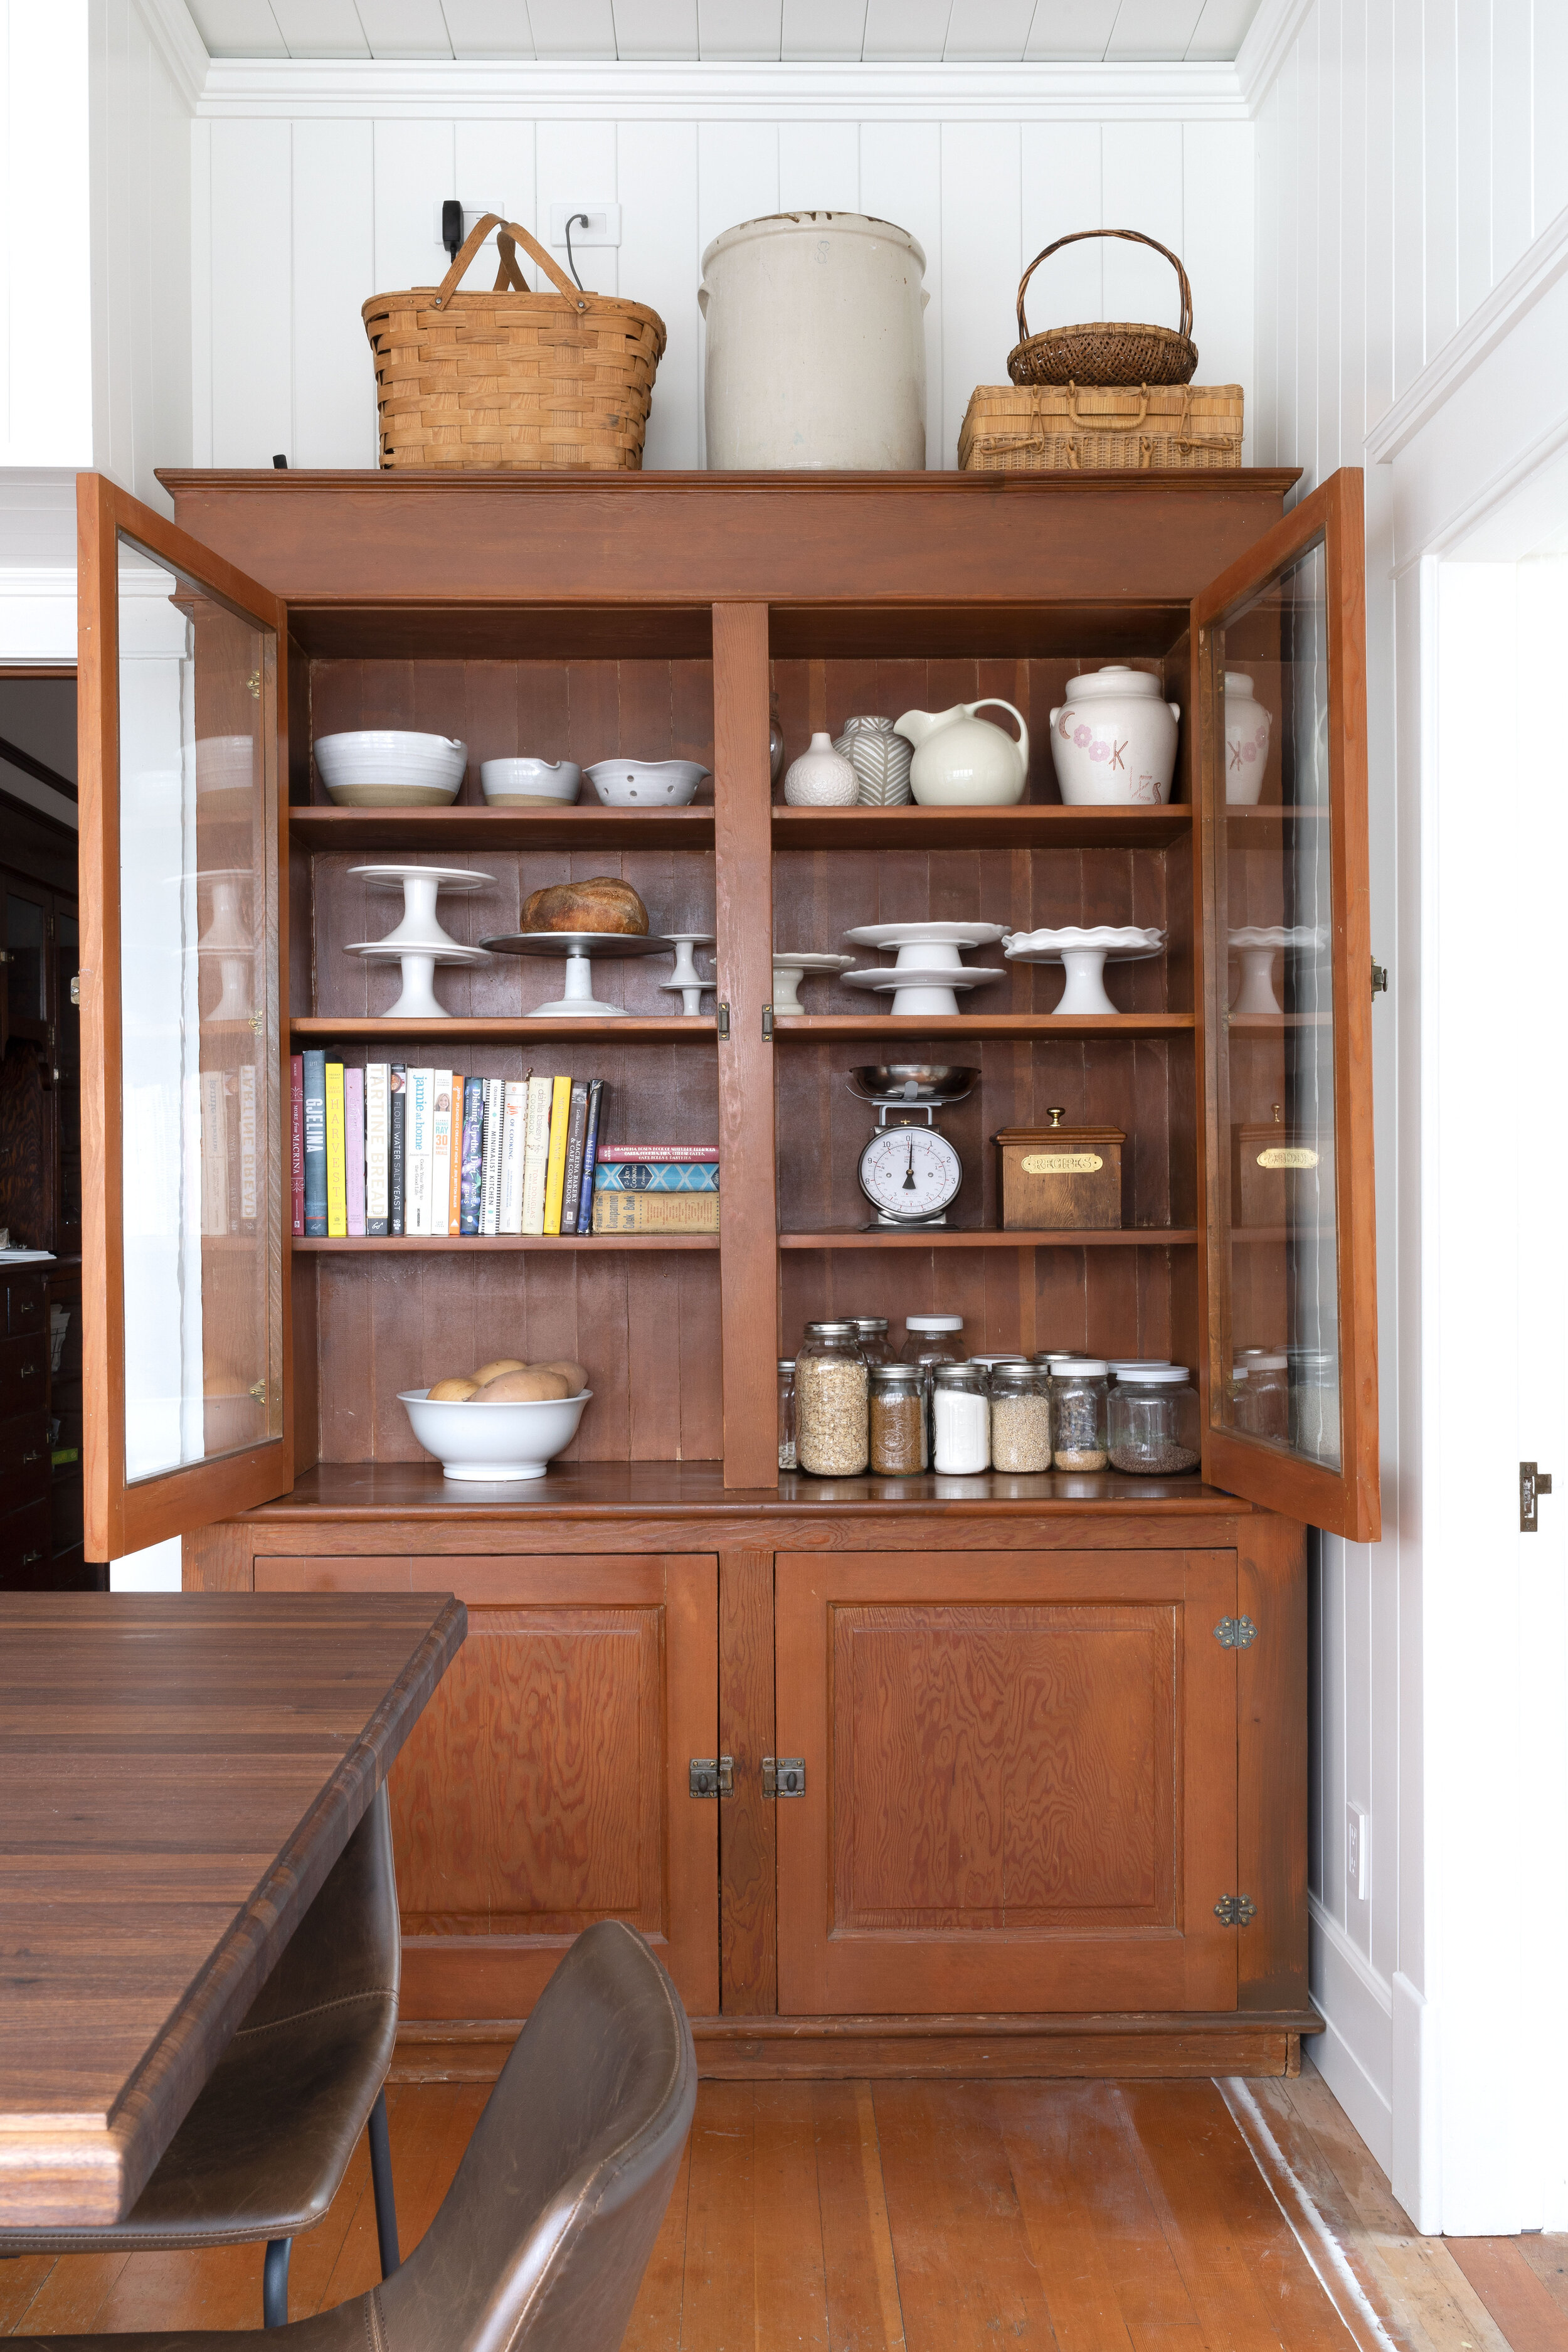 The Grit and Polish - Farmhouse White Country Kitchen Reveal Vintage Hutch web.jpg